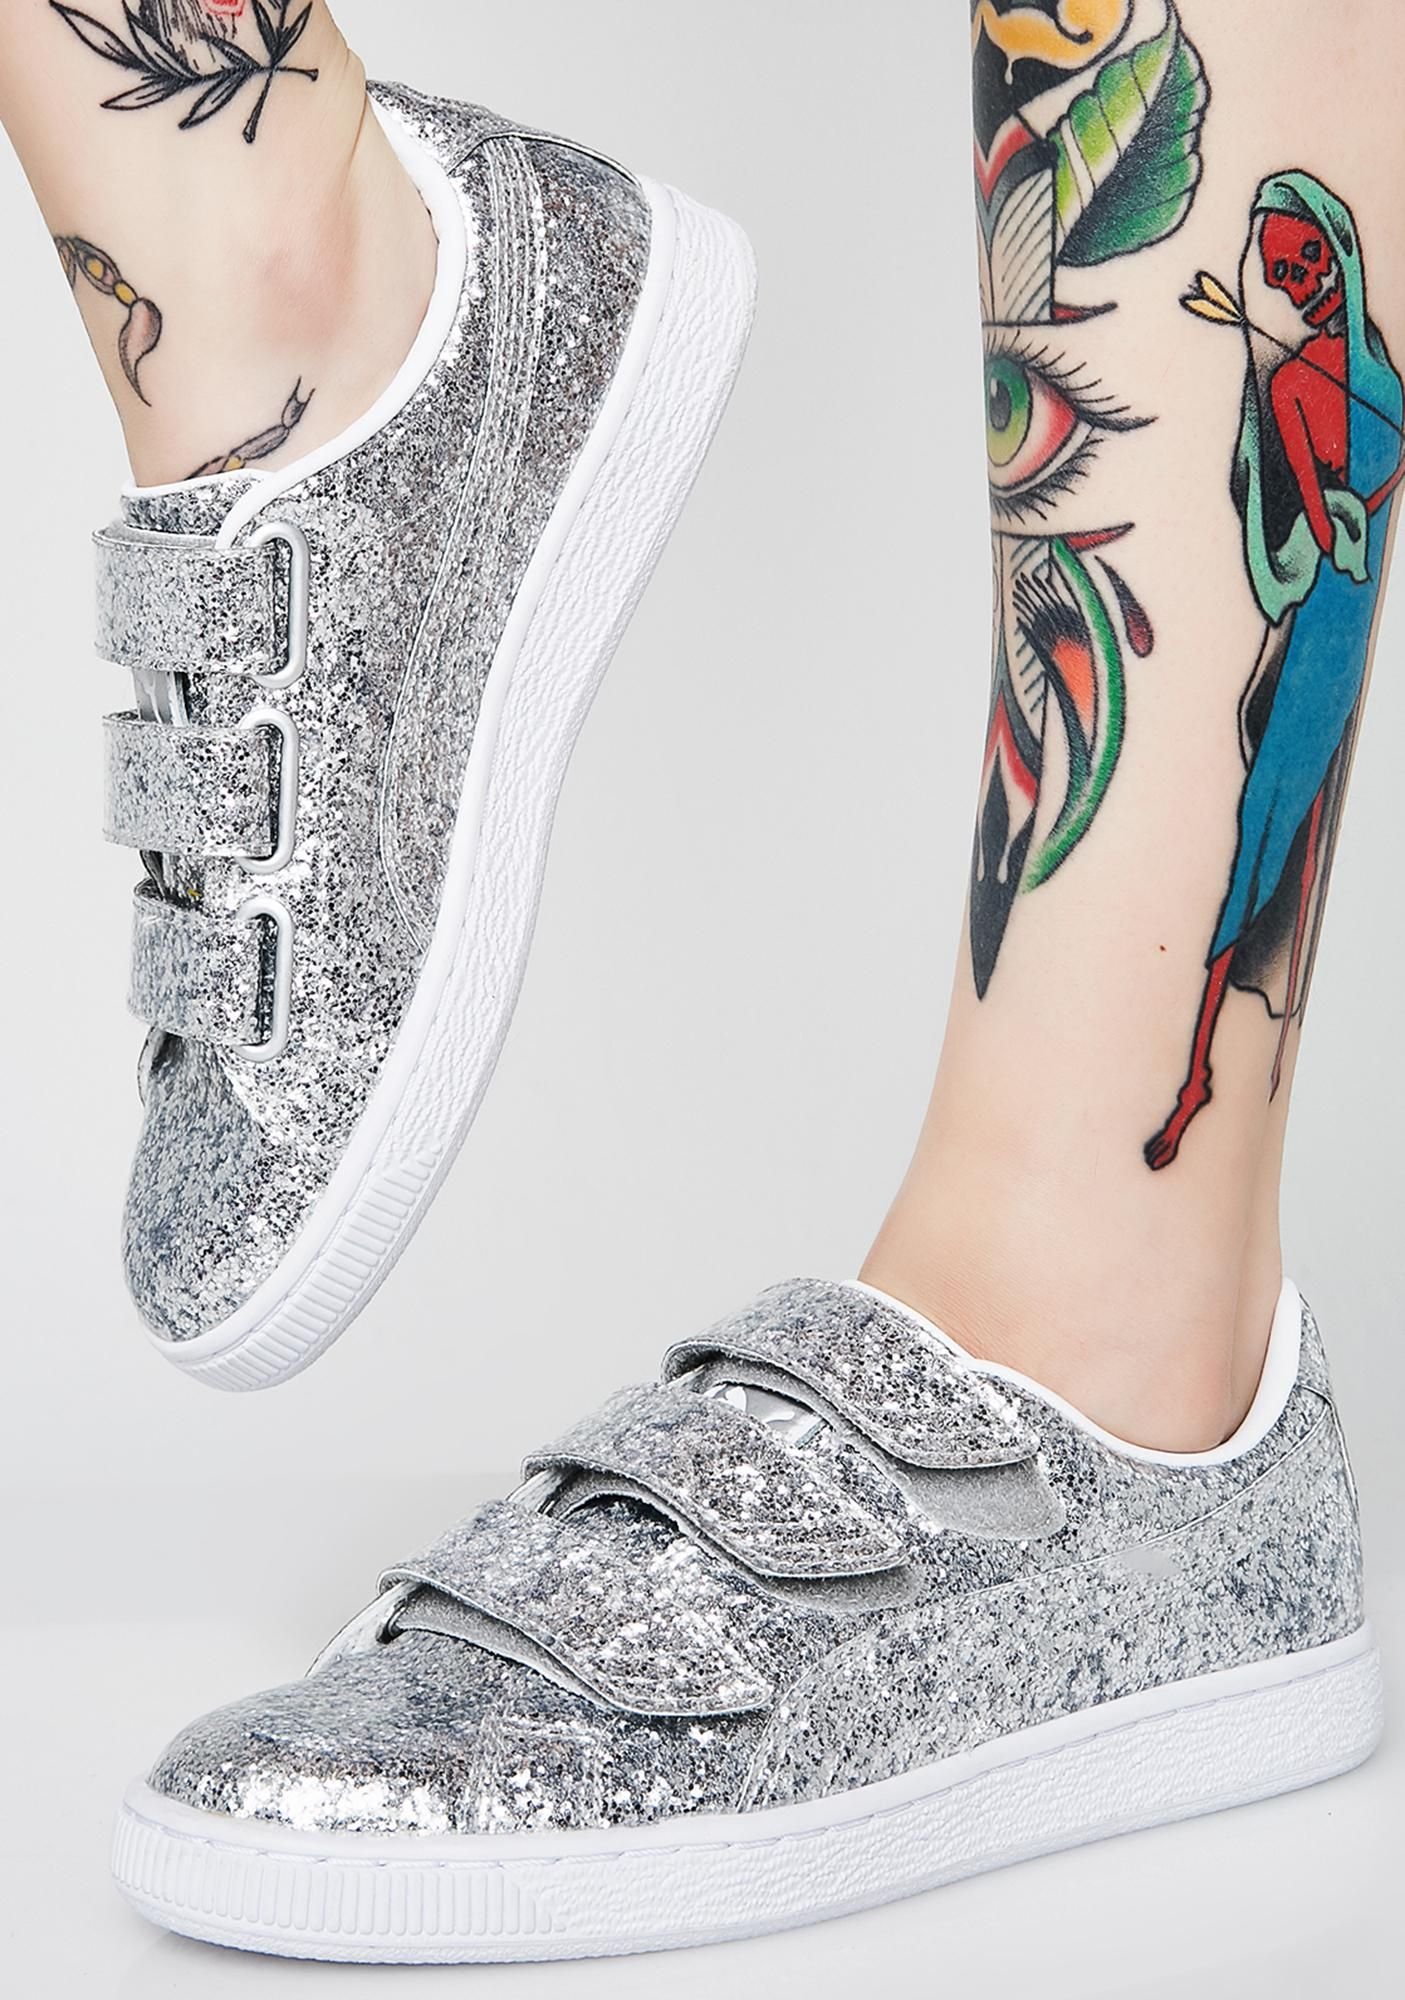 quality design d0695 78c93 PUMA Basket Strap Glitter Sneakers cuz you gotta get your sparkle on. These  sikk sneakers have a silver glitter exterior and three velcro straps on top.